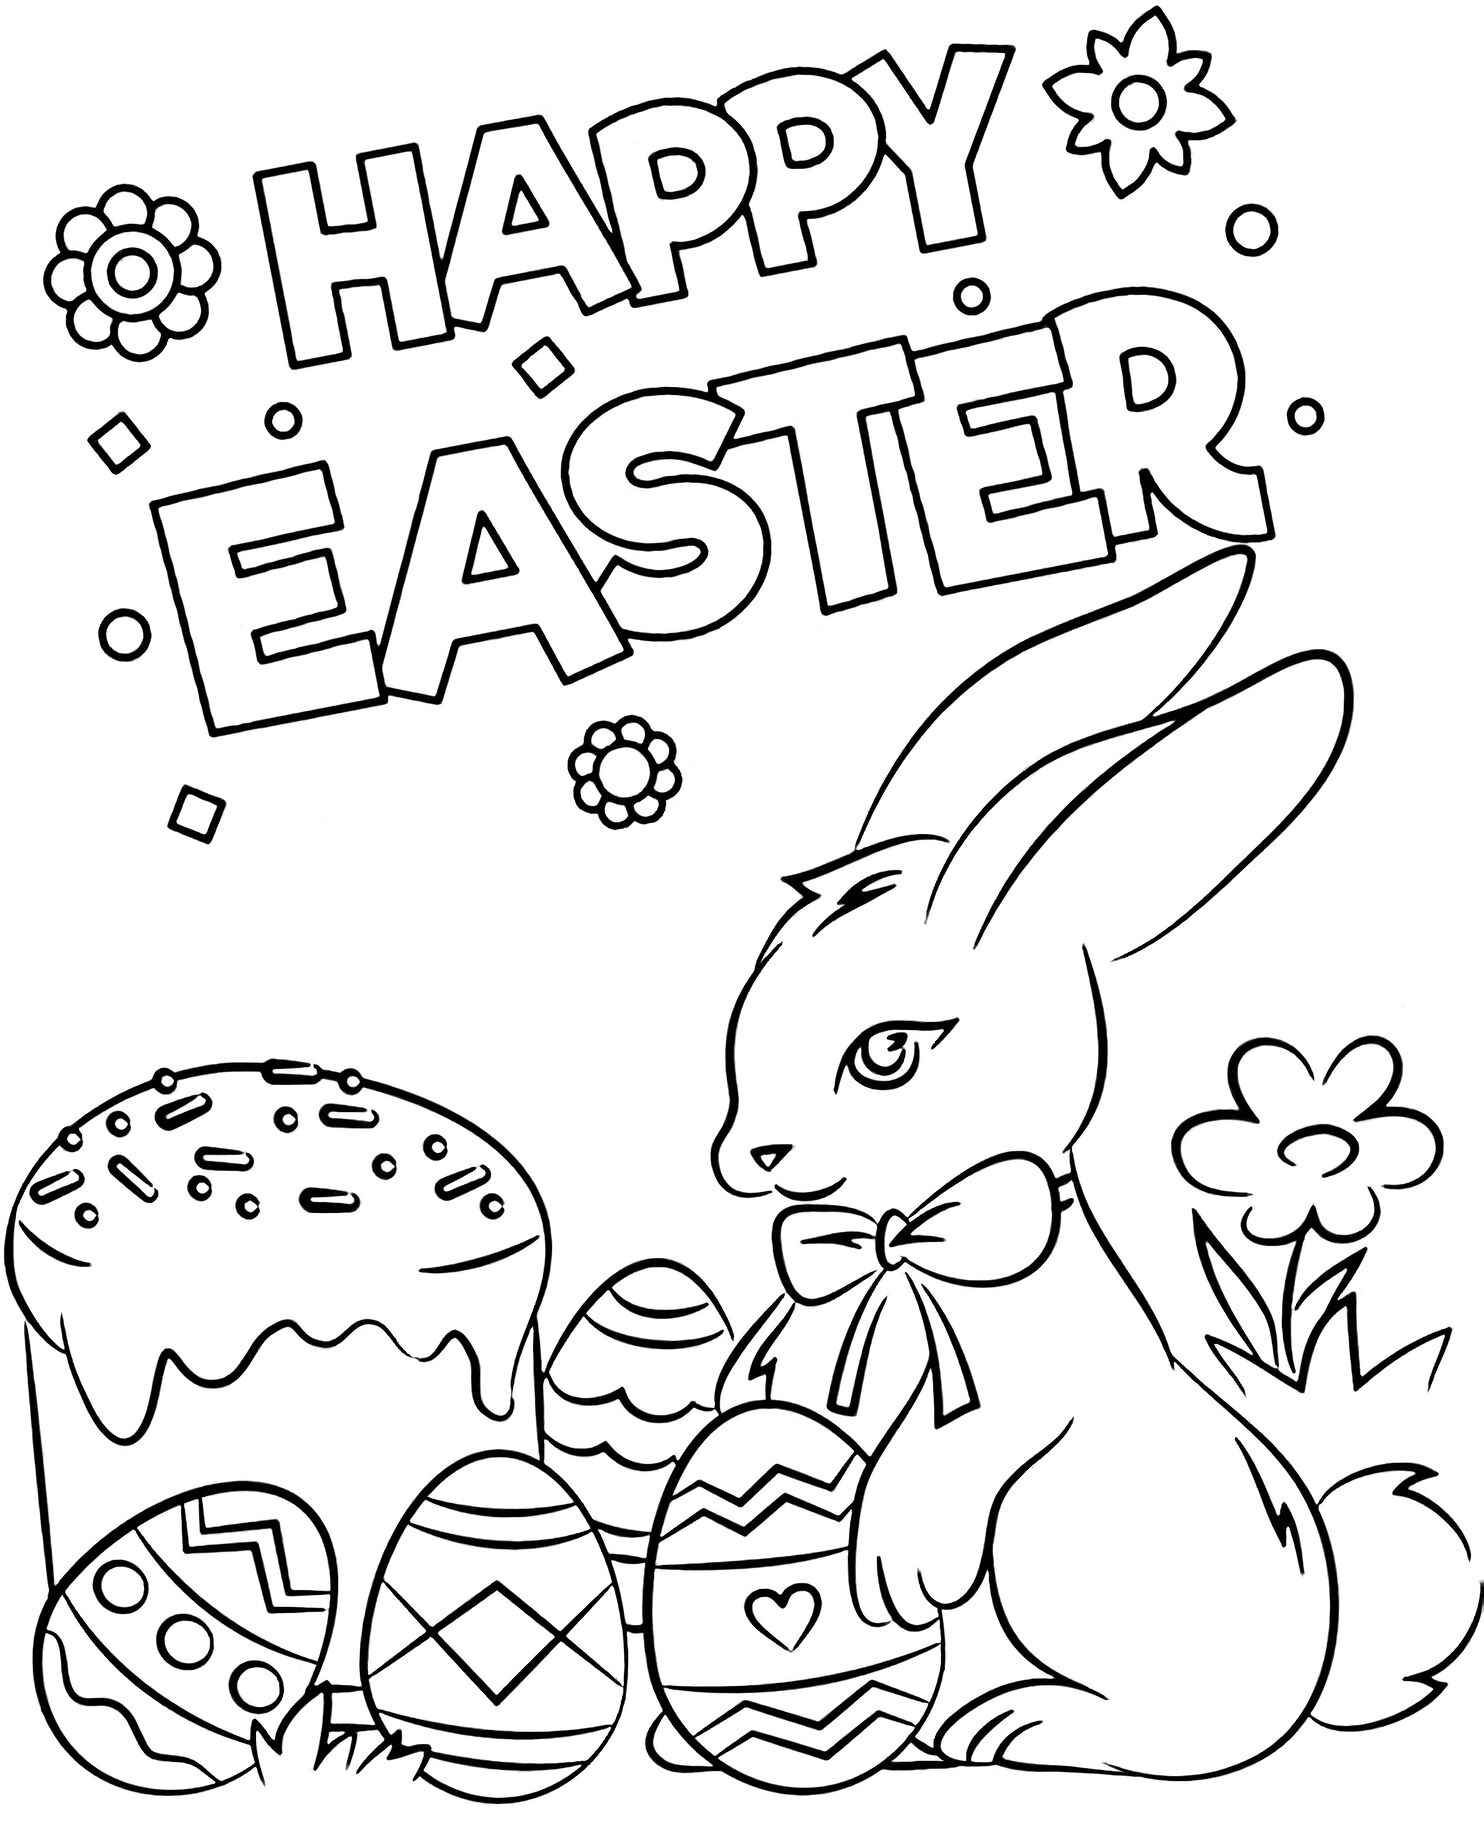 Cute Easter Bunny With Easter Eggs Coloring Page